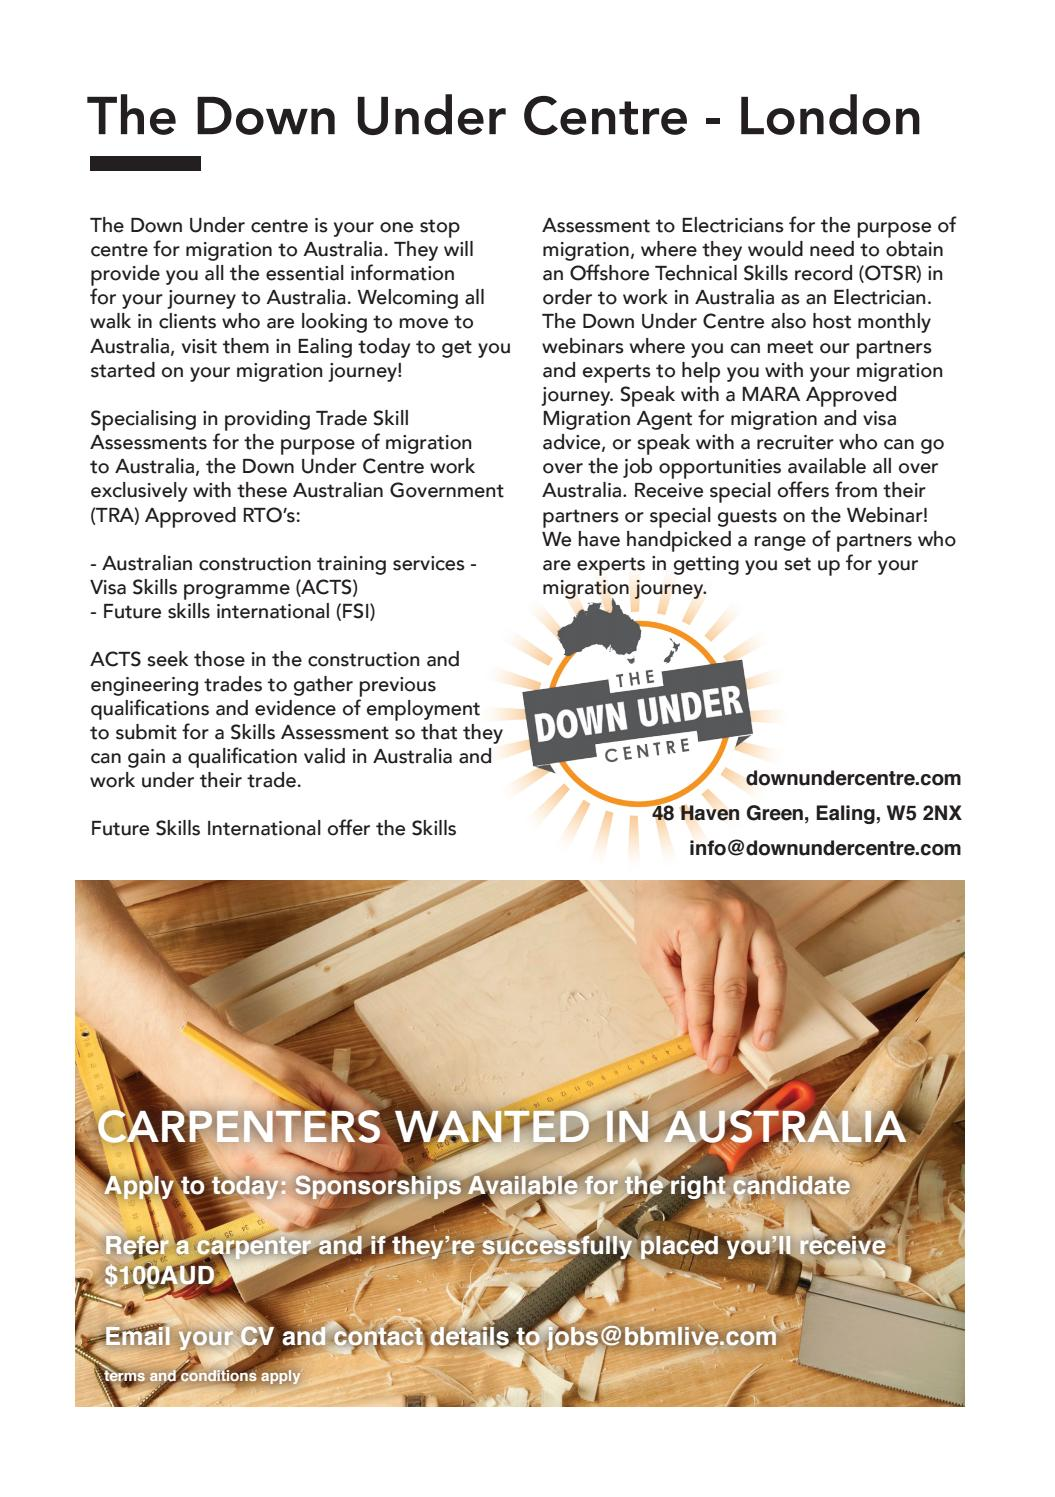 Down under jobs guide 2017 by bbmlive com - issuu